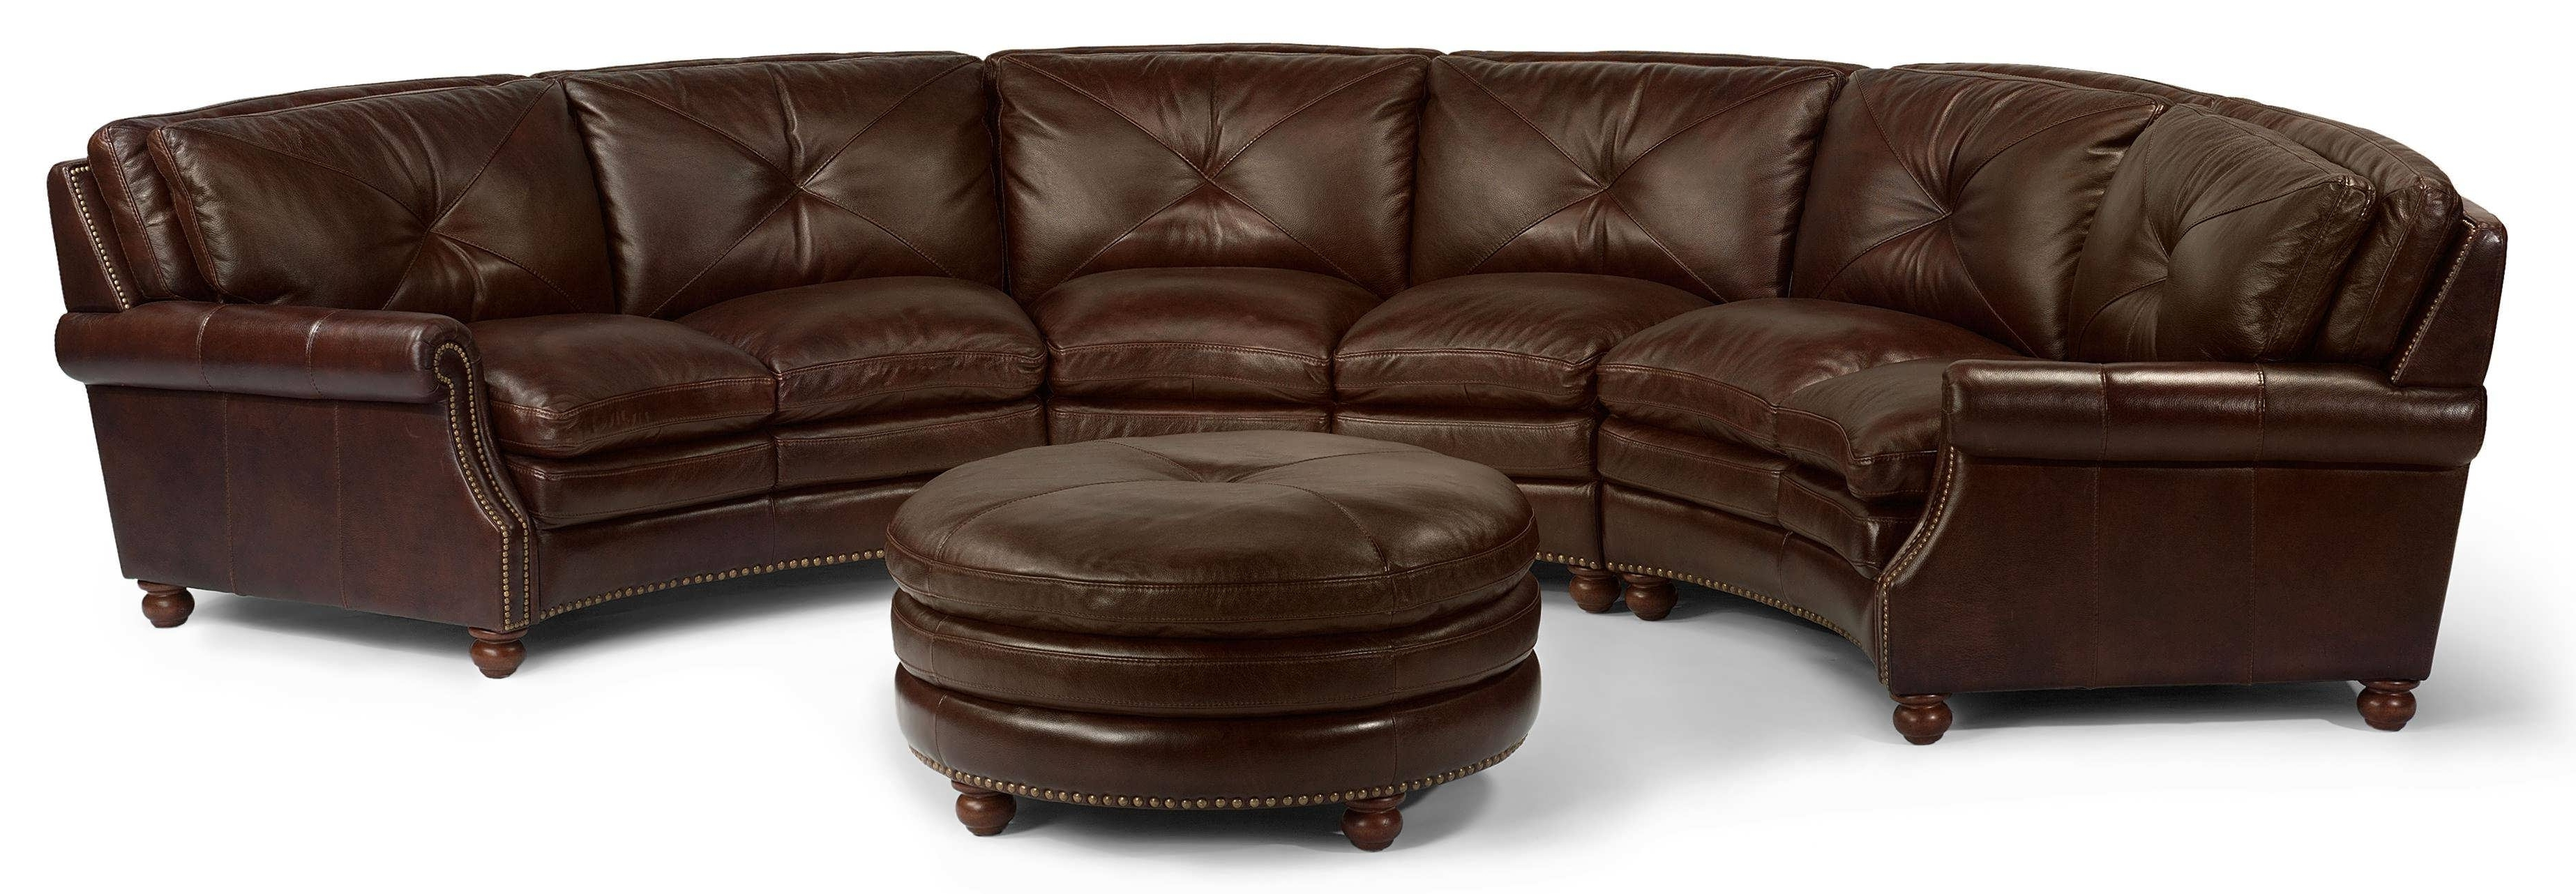 Well Known Sofa : Black Leather Sectional Brown Sectional Couch Sectional Intended For L Shaped Sectionals With Chaise (View 15 of 15)